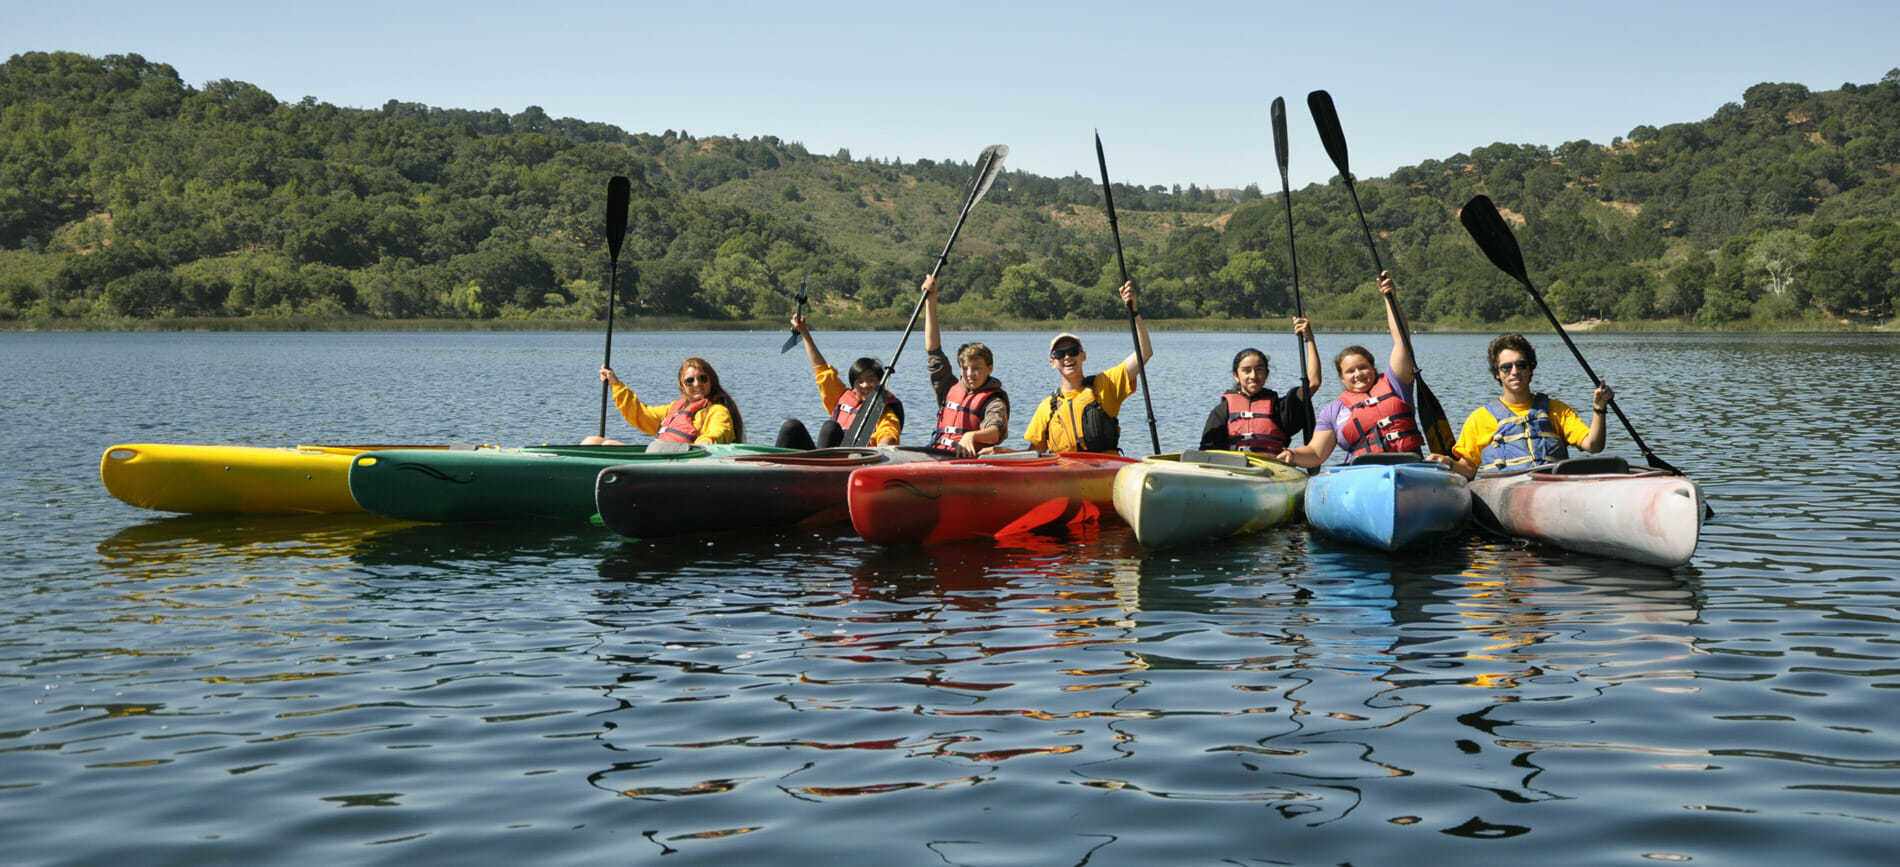 Reservoir Activities – Sports, Crafts, Adventure, Outdoors, Environment